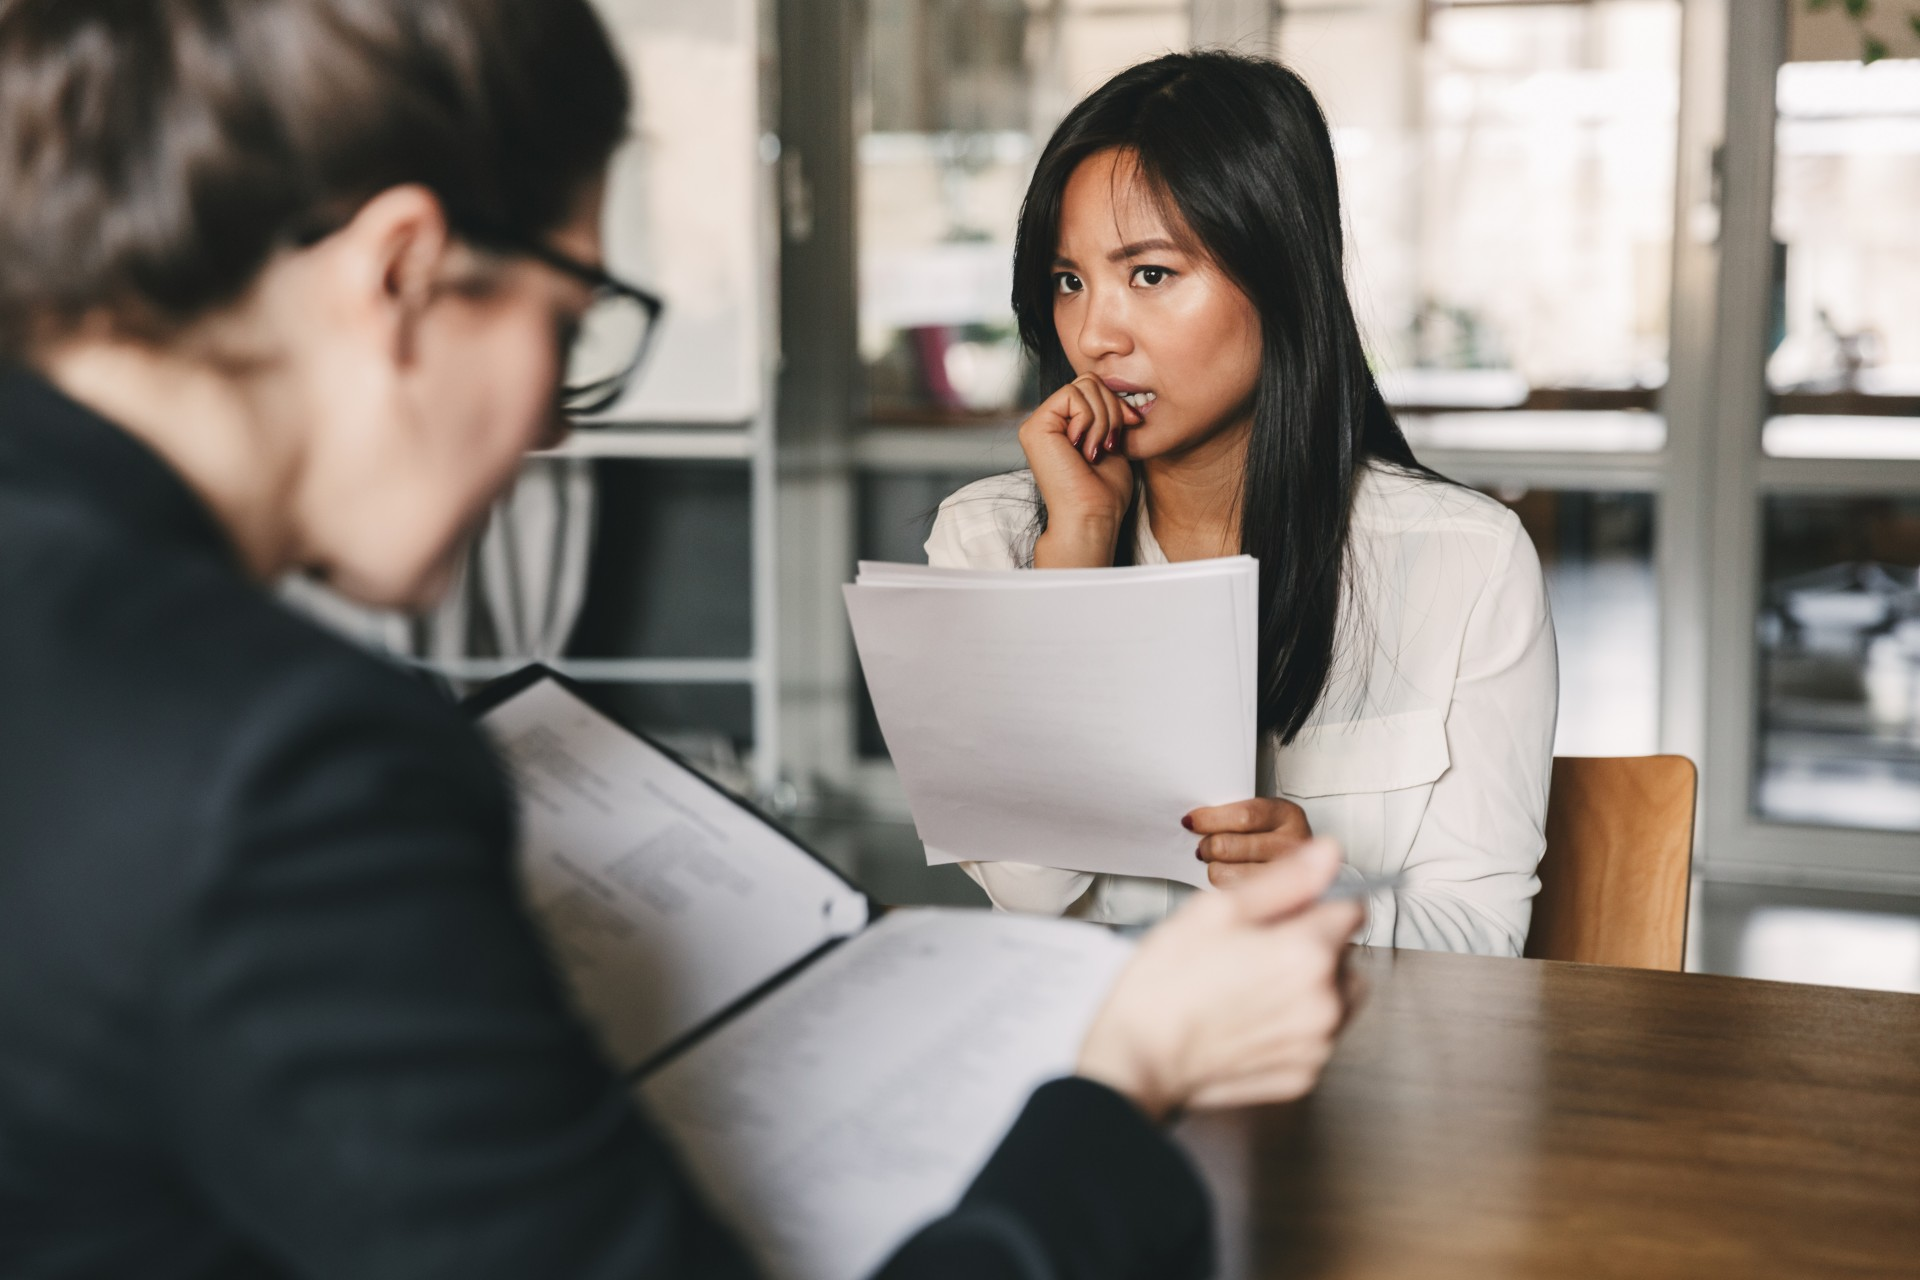 How to Ace Job Interview with No Experience